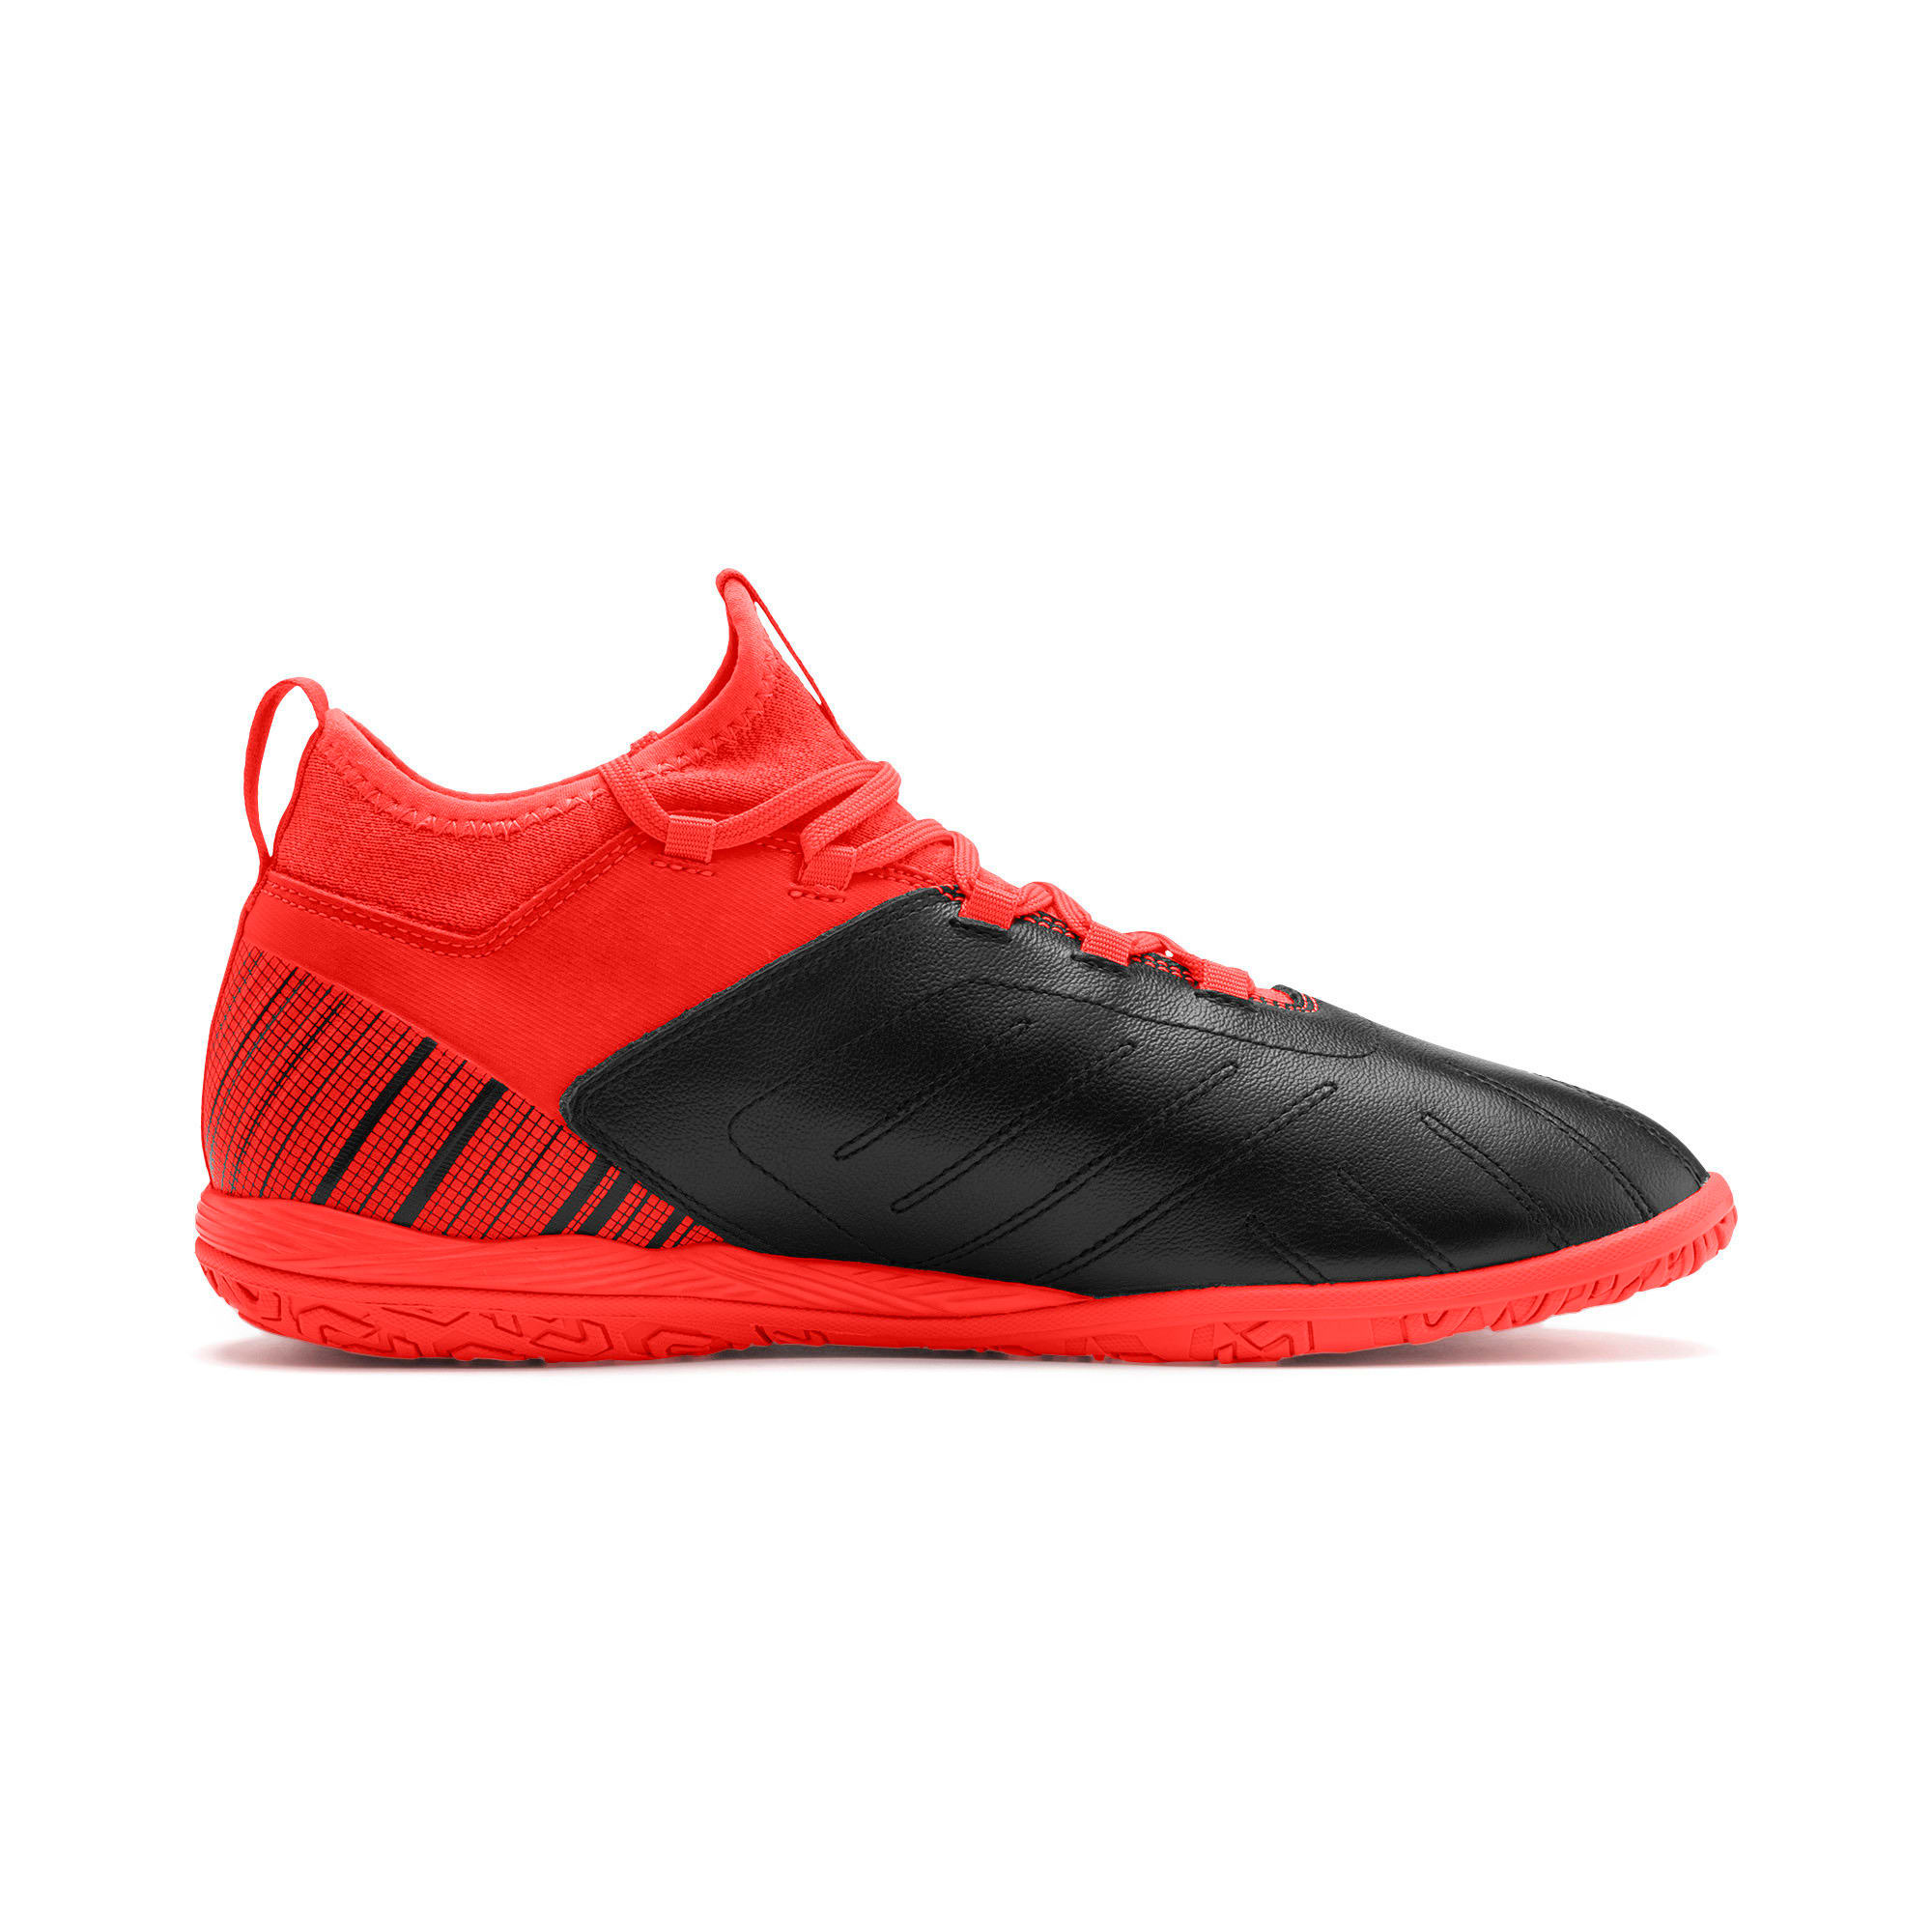 Thumbnail 6 of PUMA ONE 5.3 IT Soccer Shoes, Black-Nrgy Red-Aged Silver, medium